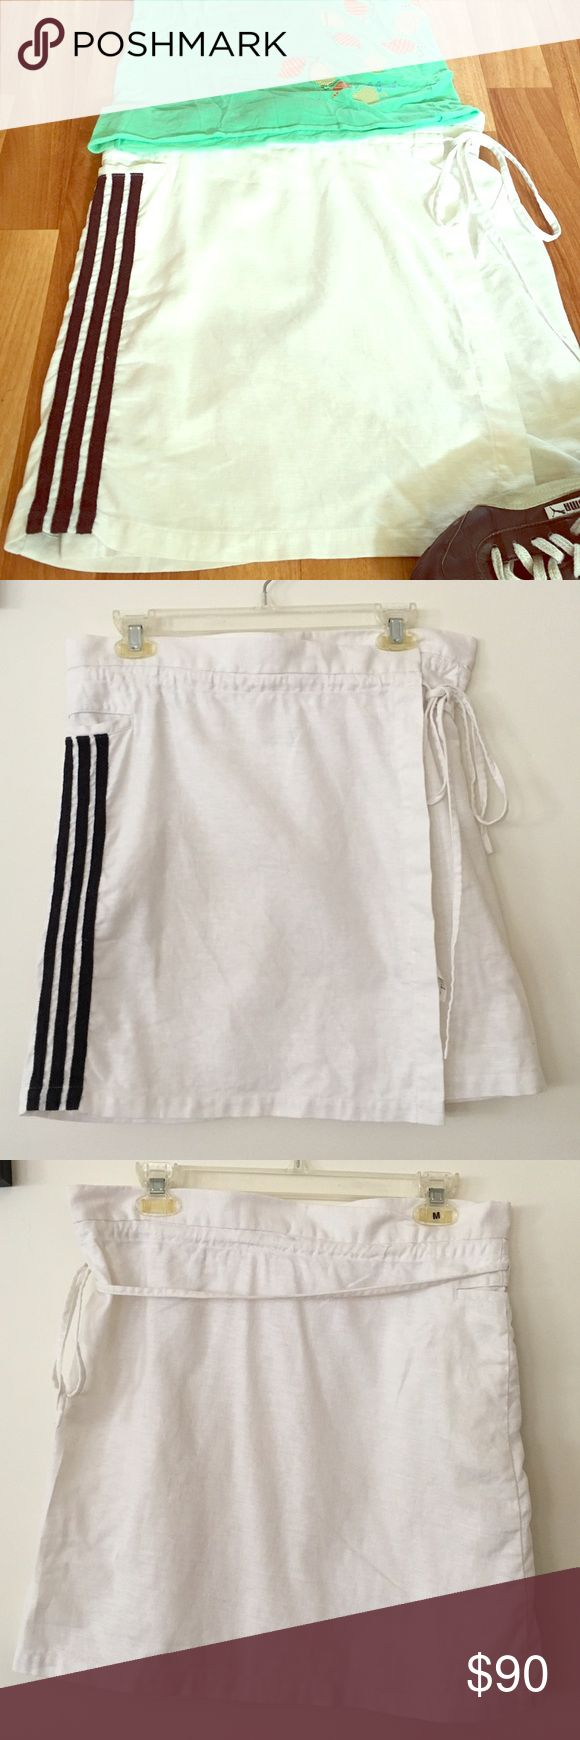 Y-3 linen wrap skirt Off white linen wrap skirt with 3 black line detail on right side. One pocket. In excellent condition. Yohji Yamamoto for Adidas. Y-3 Skirts